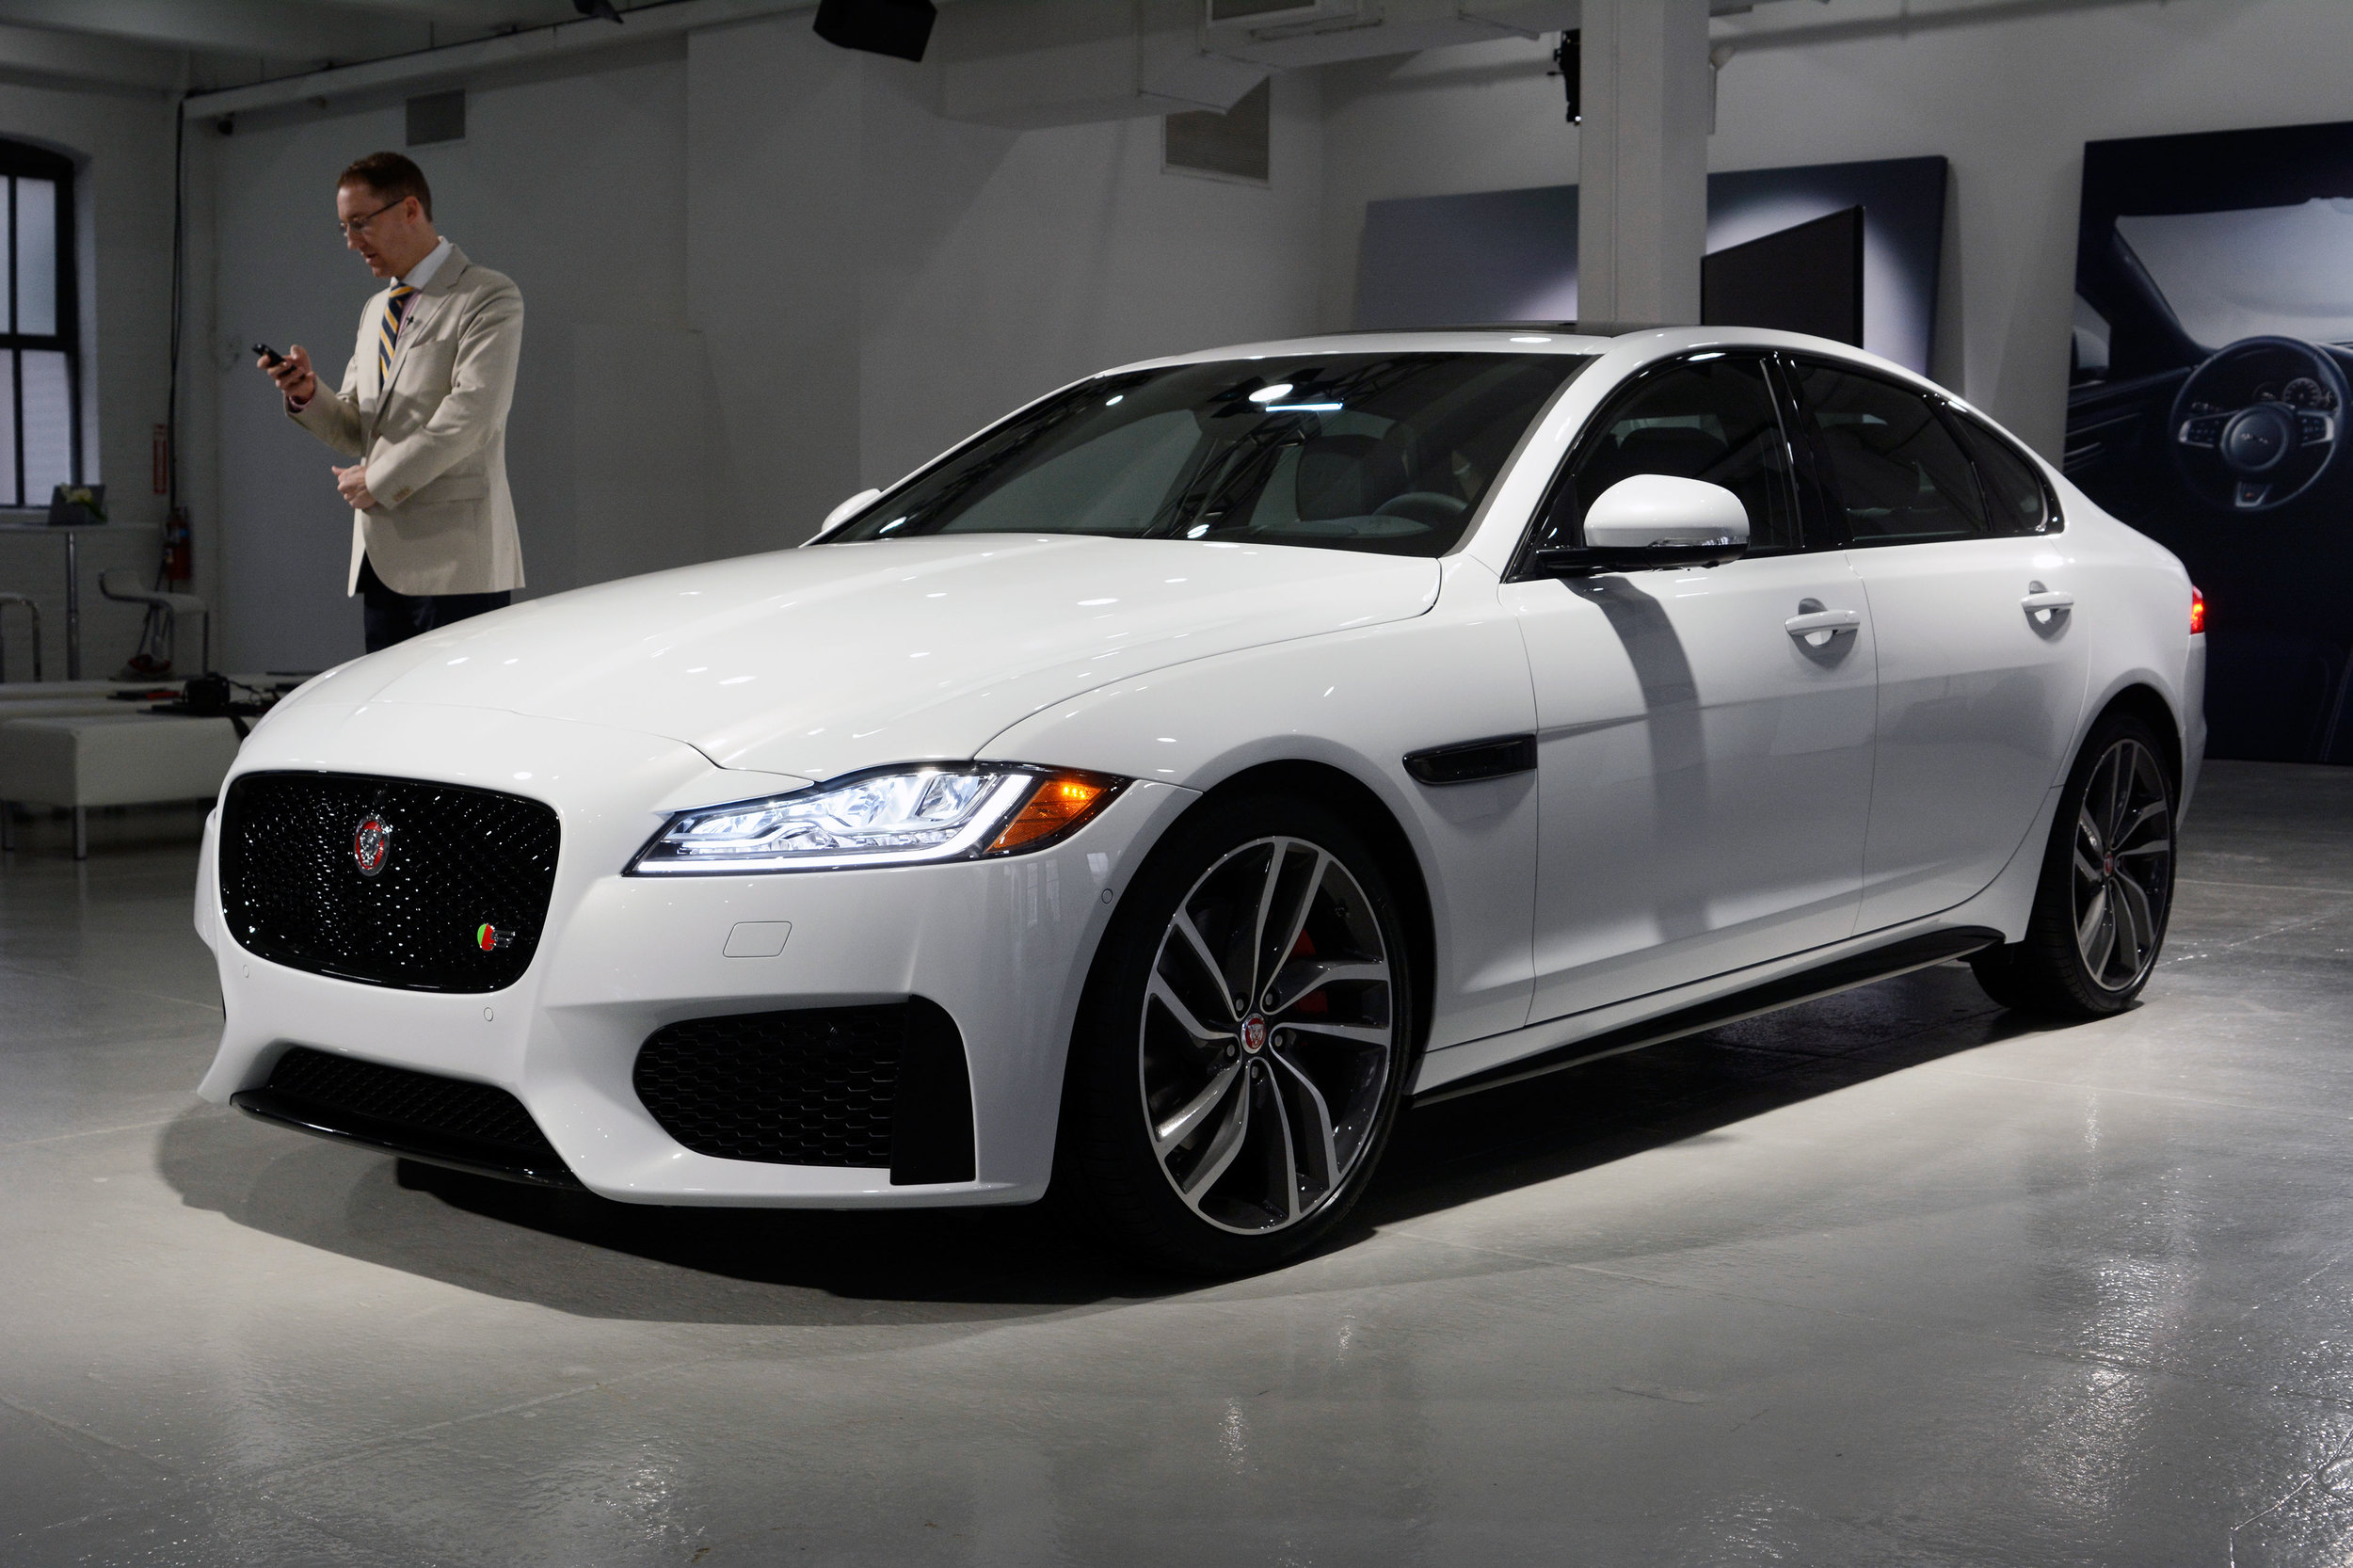 c is image suv f car ever jaguar land detroit auto pace show stunning insider rover first business s